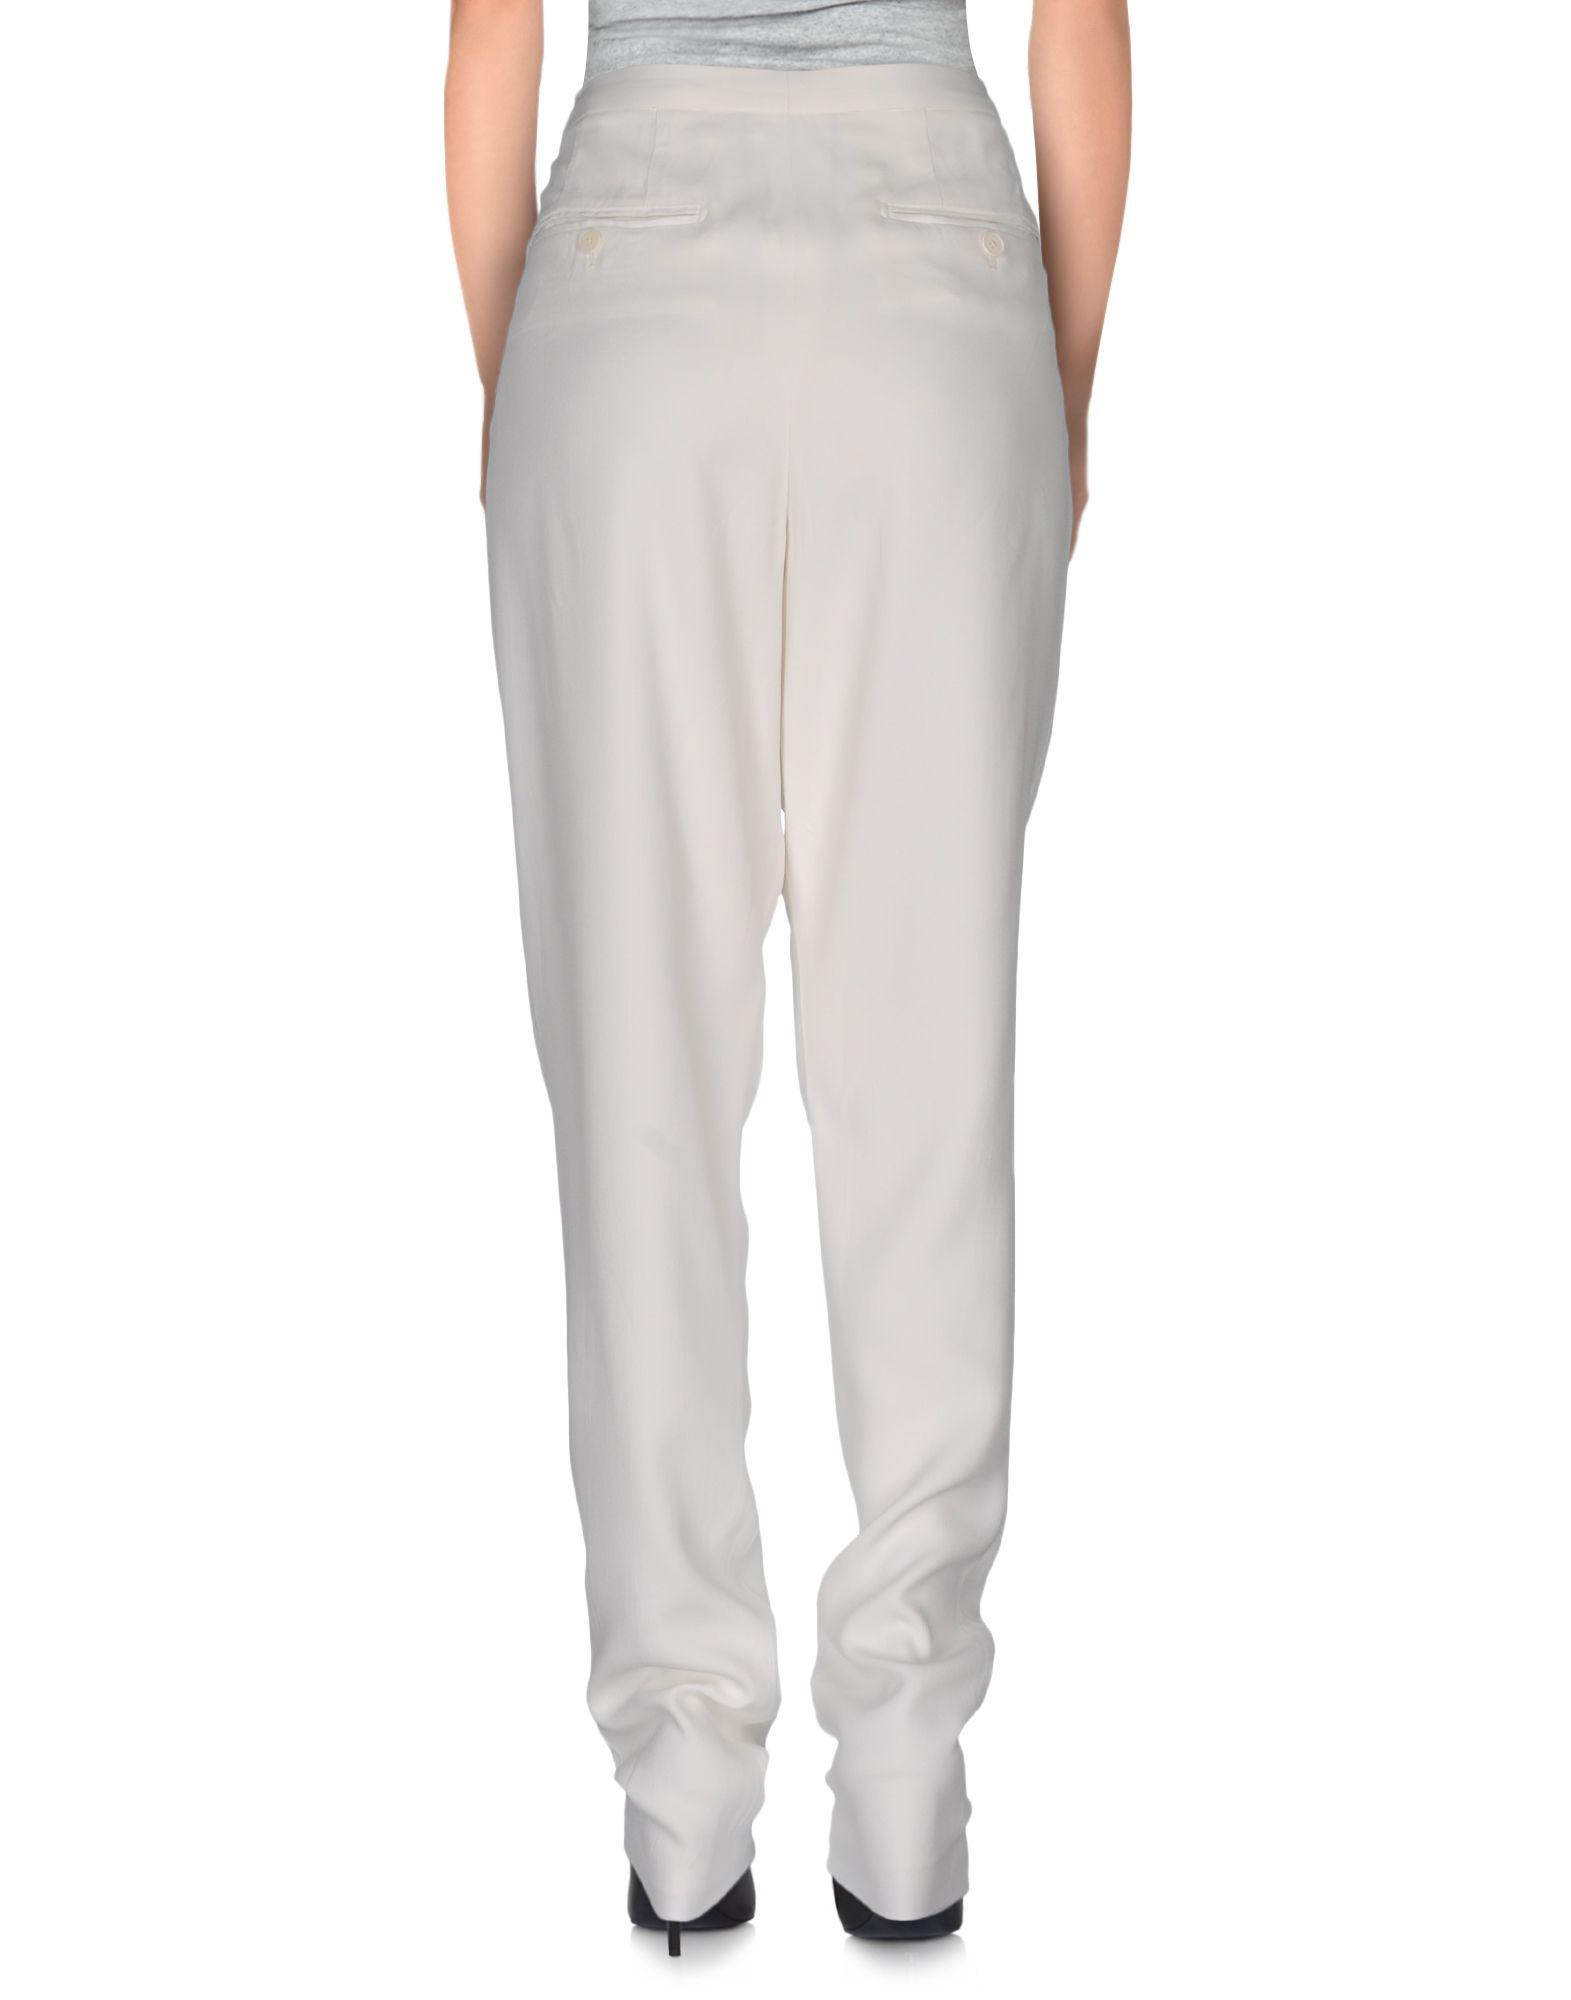 8a33ef4609e40 Lyst - Pantalon Tom Ford en coloris Blanc